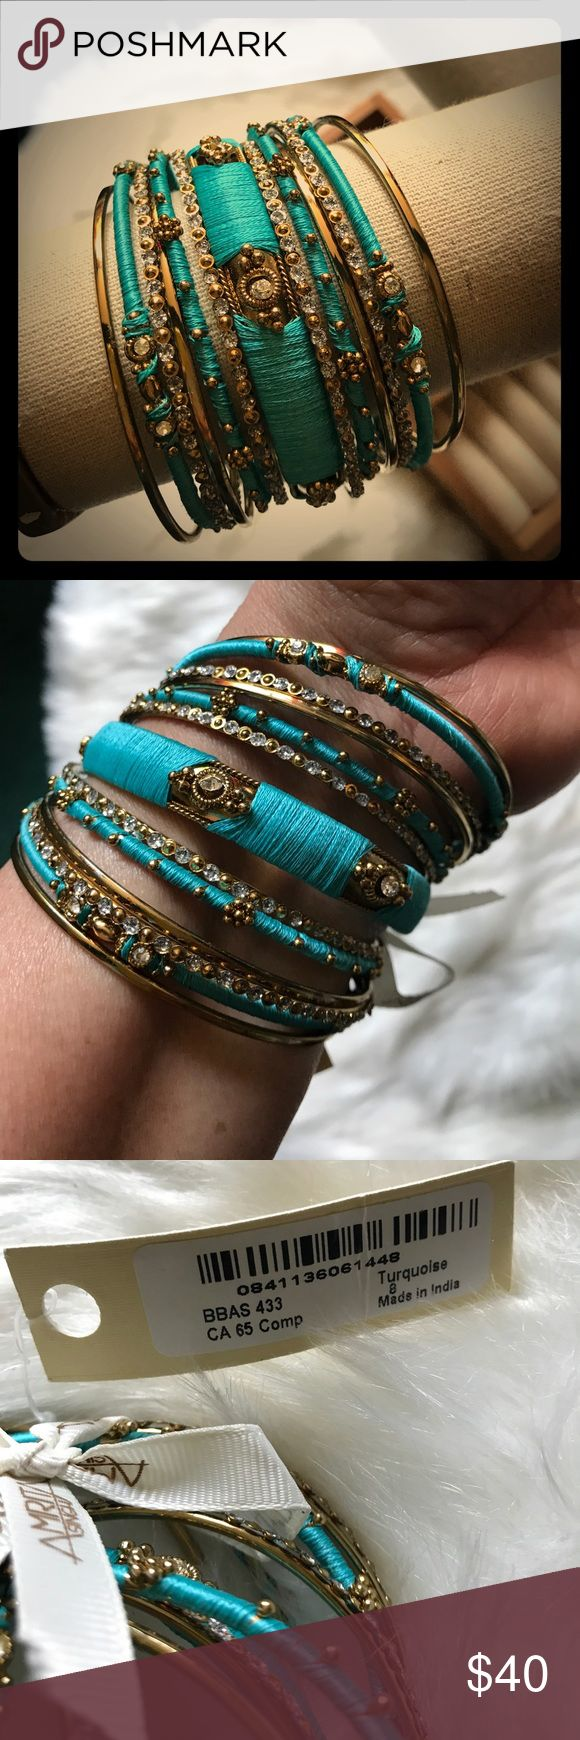 "Amrita Singh 13-piece Ankara Bangle Bracelet Set Amrita Singh 13-piece Ankara Bangle Bracelet Set in gold tone with turquoise silk thread and Austrian crystal details. Size 8"" (20.32 cm). Stacked width is 2"". NWT. Amrita Singh Jewelry Bracelets"